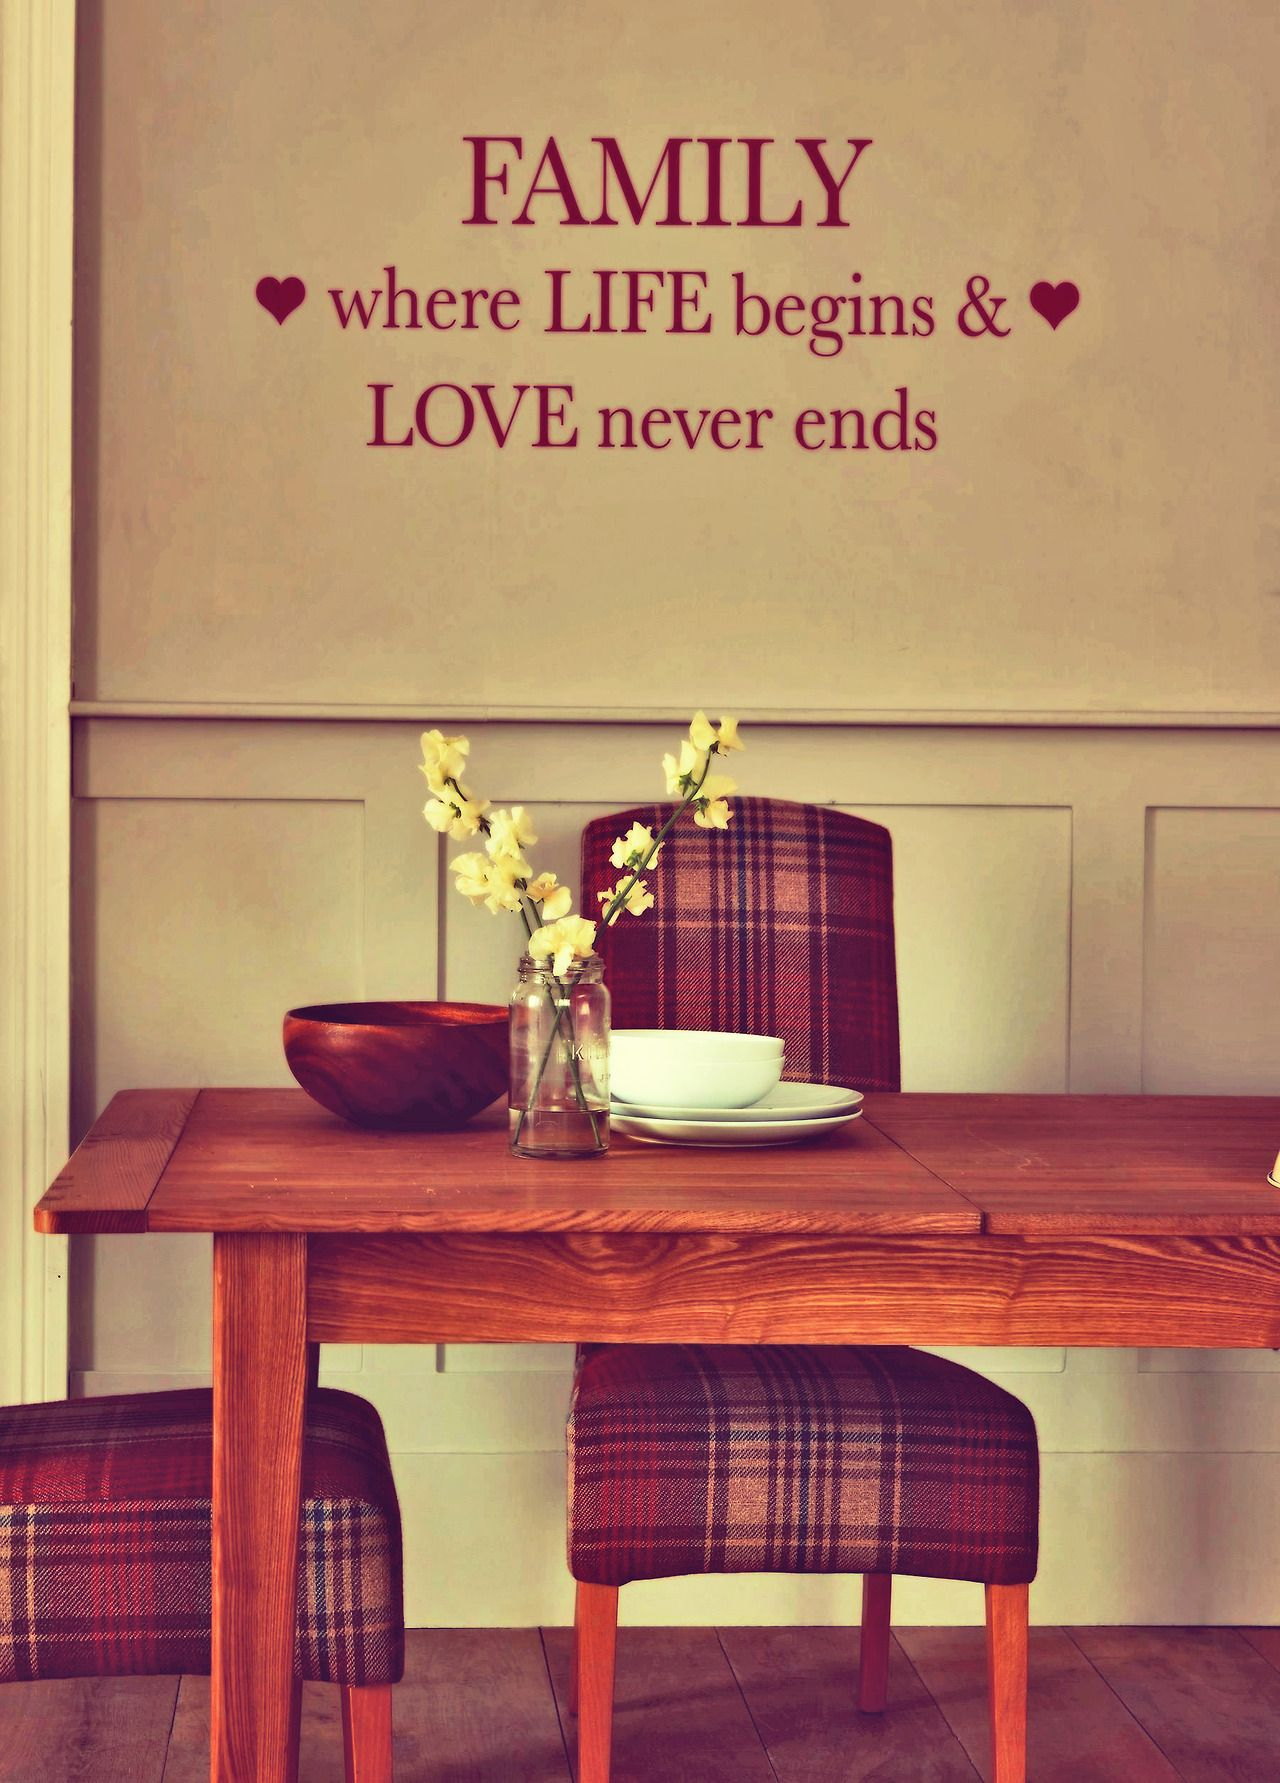 Family Wall Sticker from Next | kitchen | Pinterest | Family wall ...